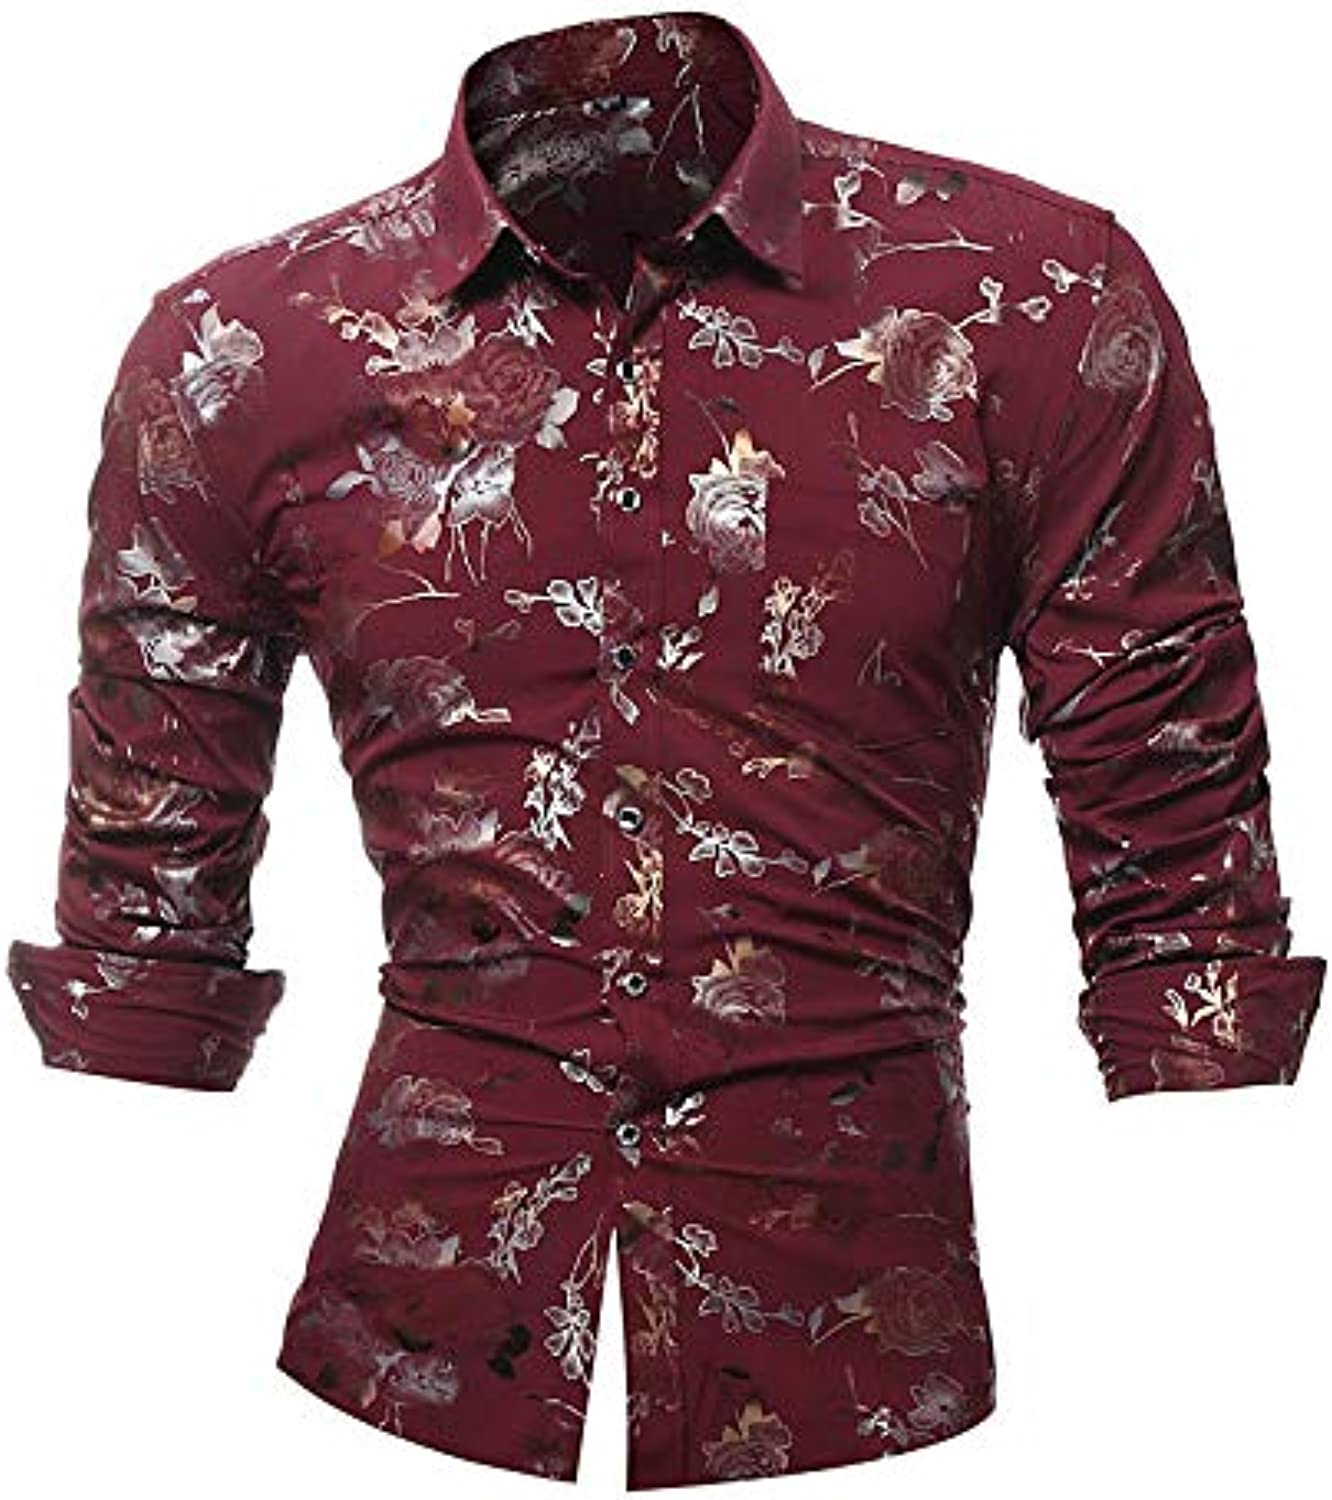 0417e90d51b0e2 Men's Club Cotton Slim Shirt Floral Please Choose Size Larger According to  Your Normal Size. Long Sleeve one nsqkmk2287-Sporting goods